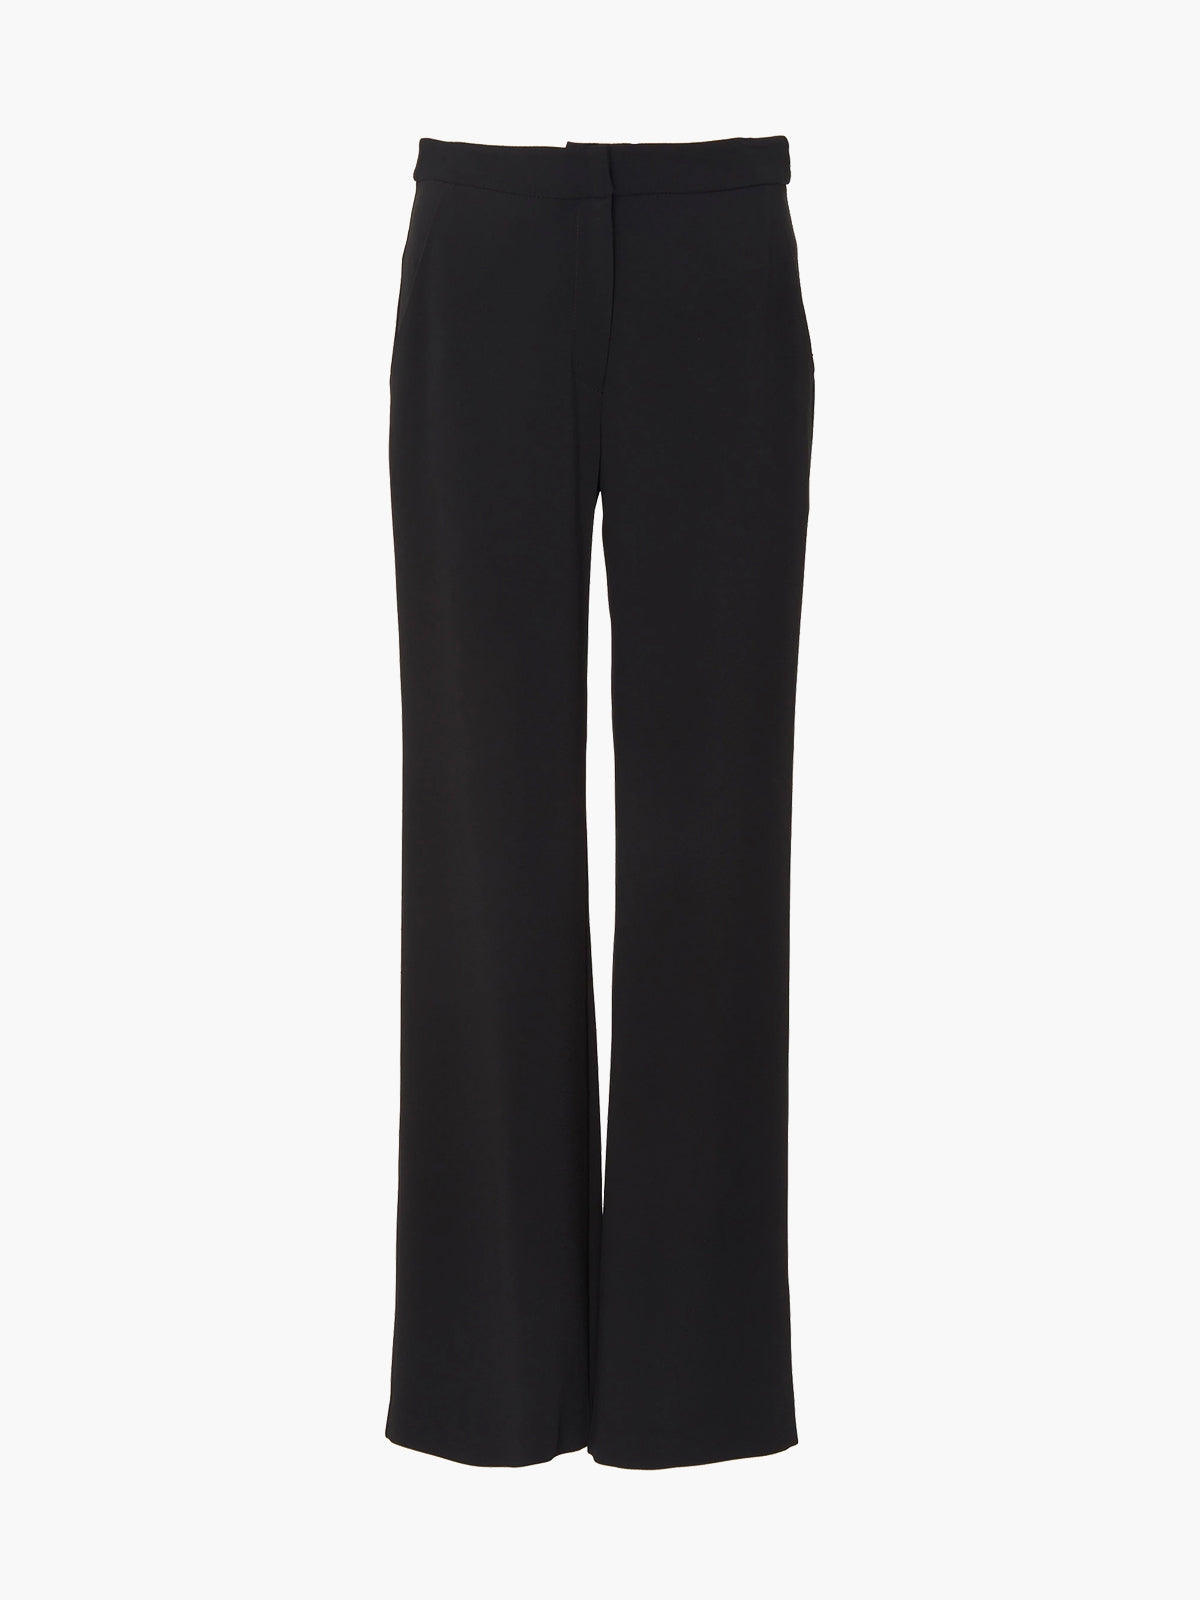 Flat Front Straight Leg Pant | Black Flat Front Straight Leg Pant | Black